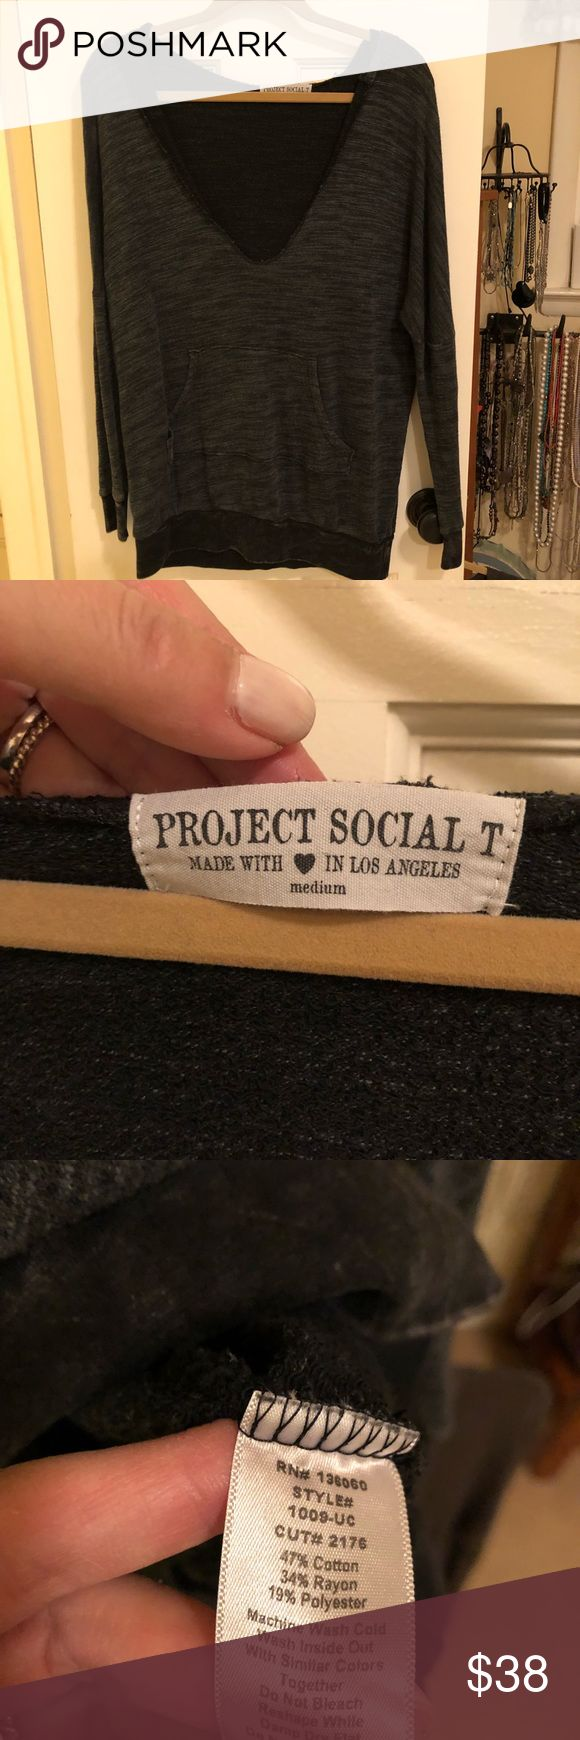 Project Social Tee. Worn once So cozy! Project Social T Tops Sweatshirts & Hoodies